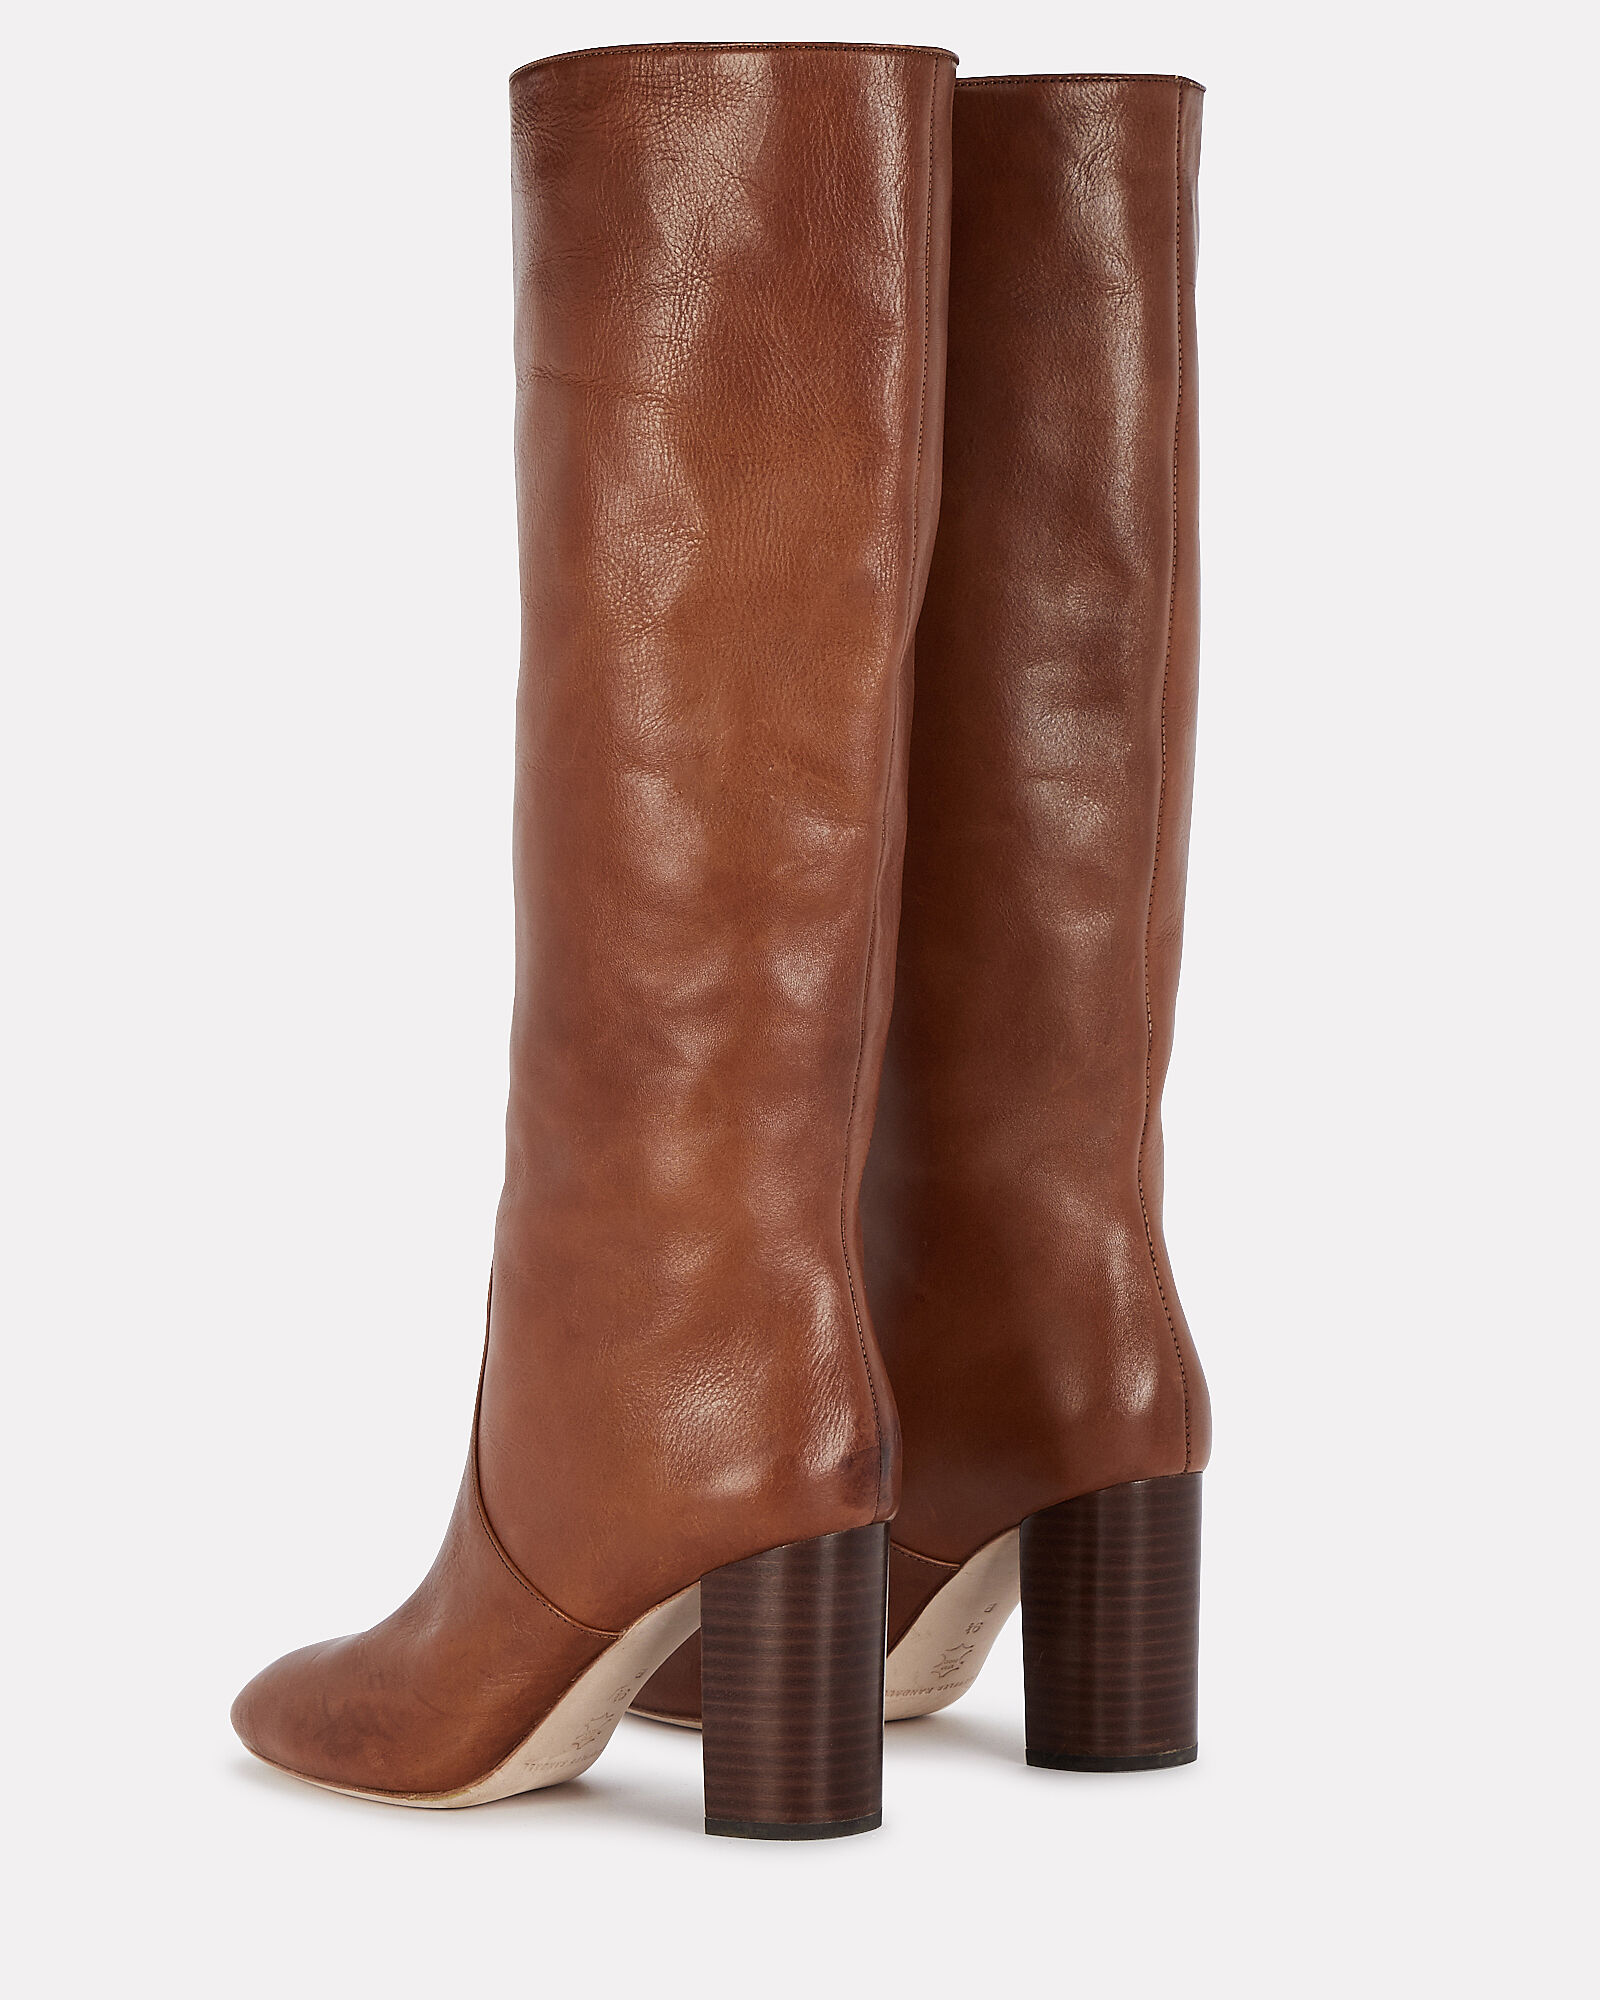 Goldy Knee-High Leather Boots, , hi-res